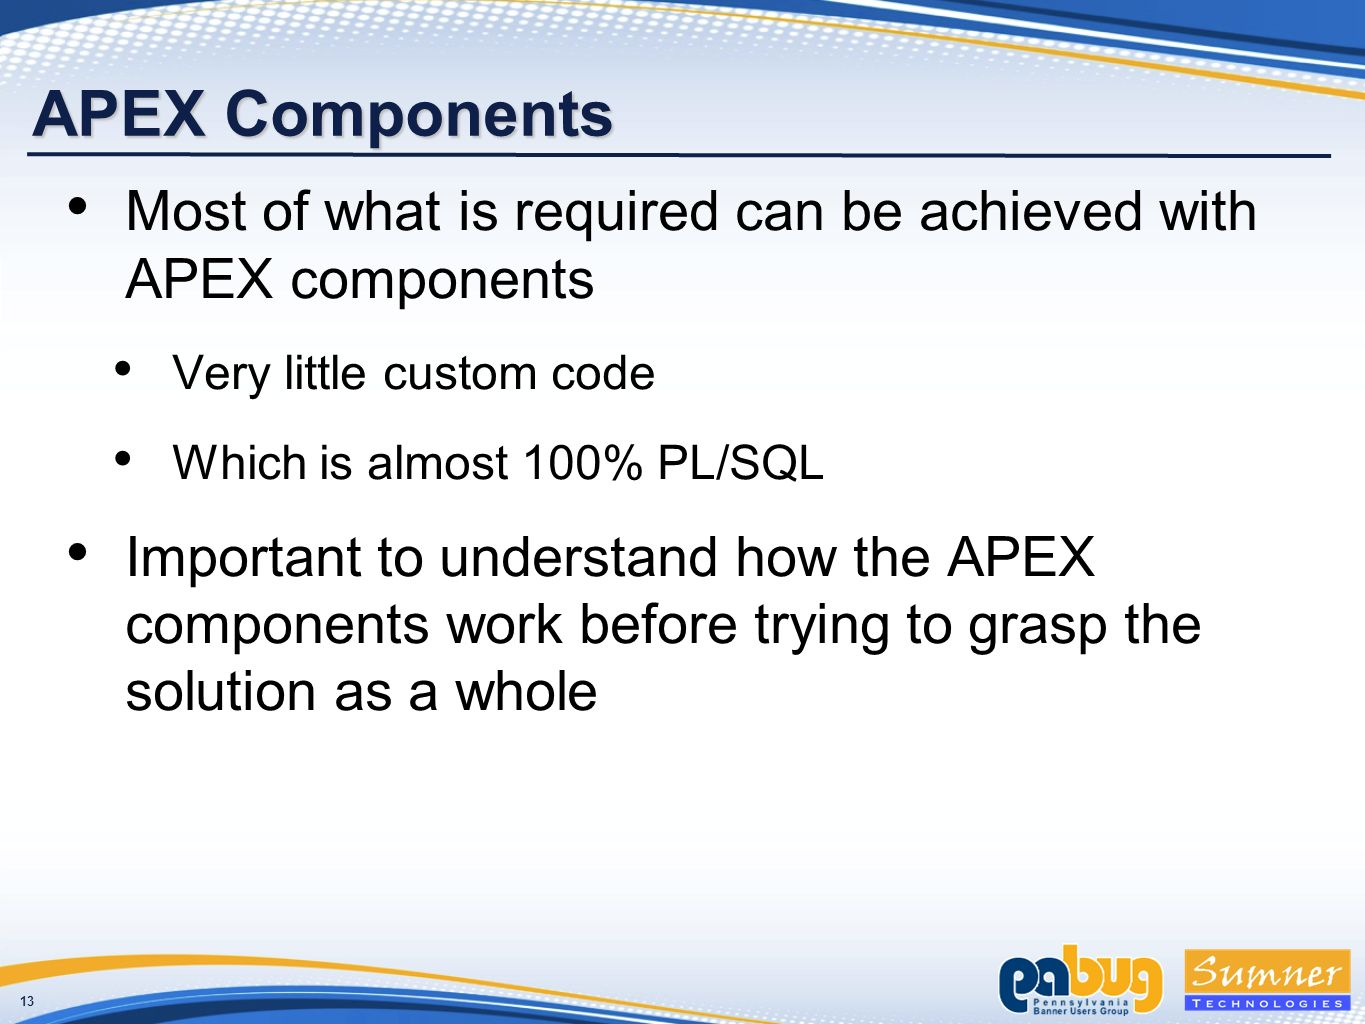 13 APEX Components Most of what is required can be achieved with APEX components Very little custom code Which is almost 100% PL/SQL Important to understand how the APEX components work before trying to grasp the solution as a whole